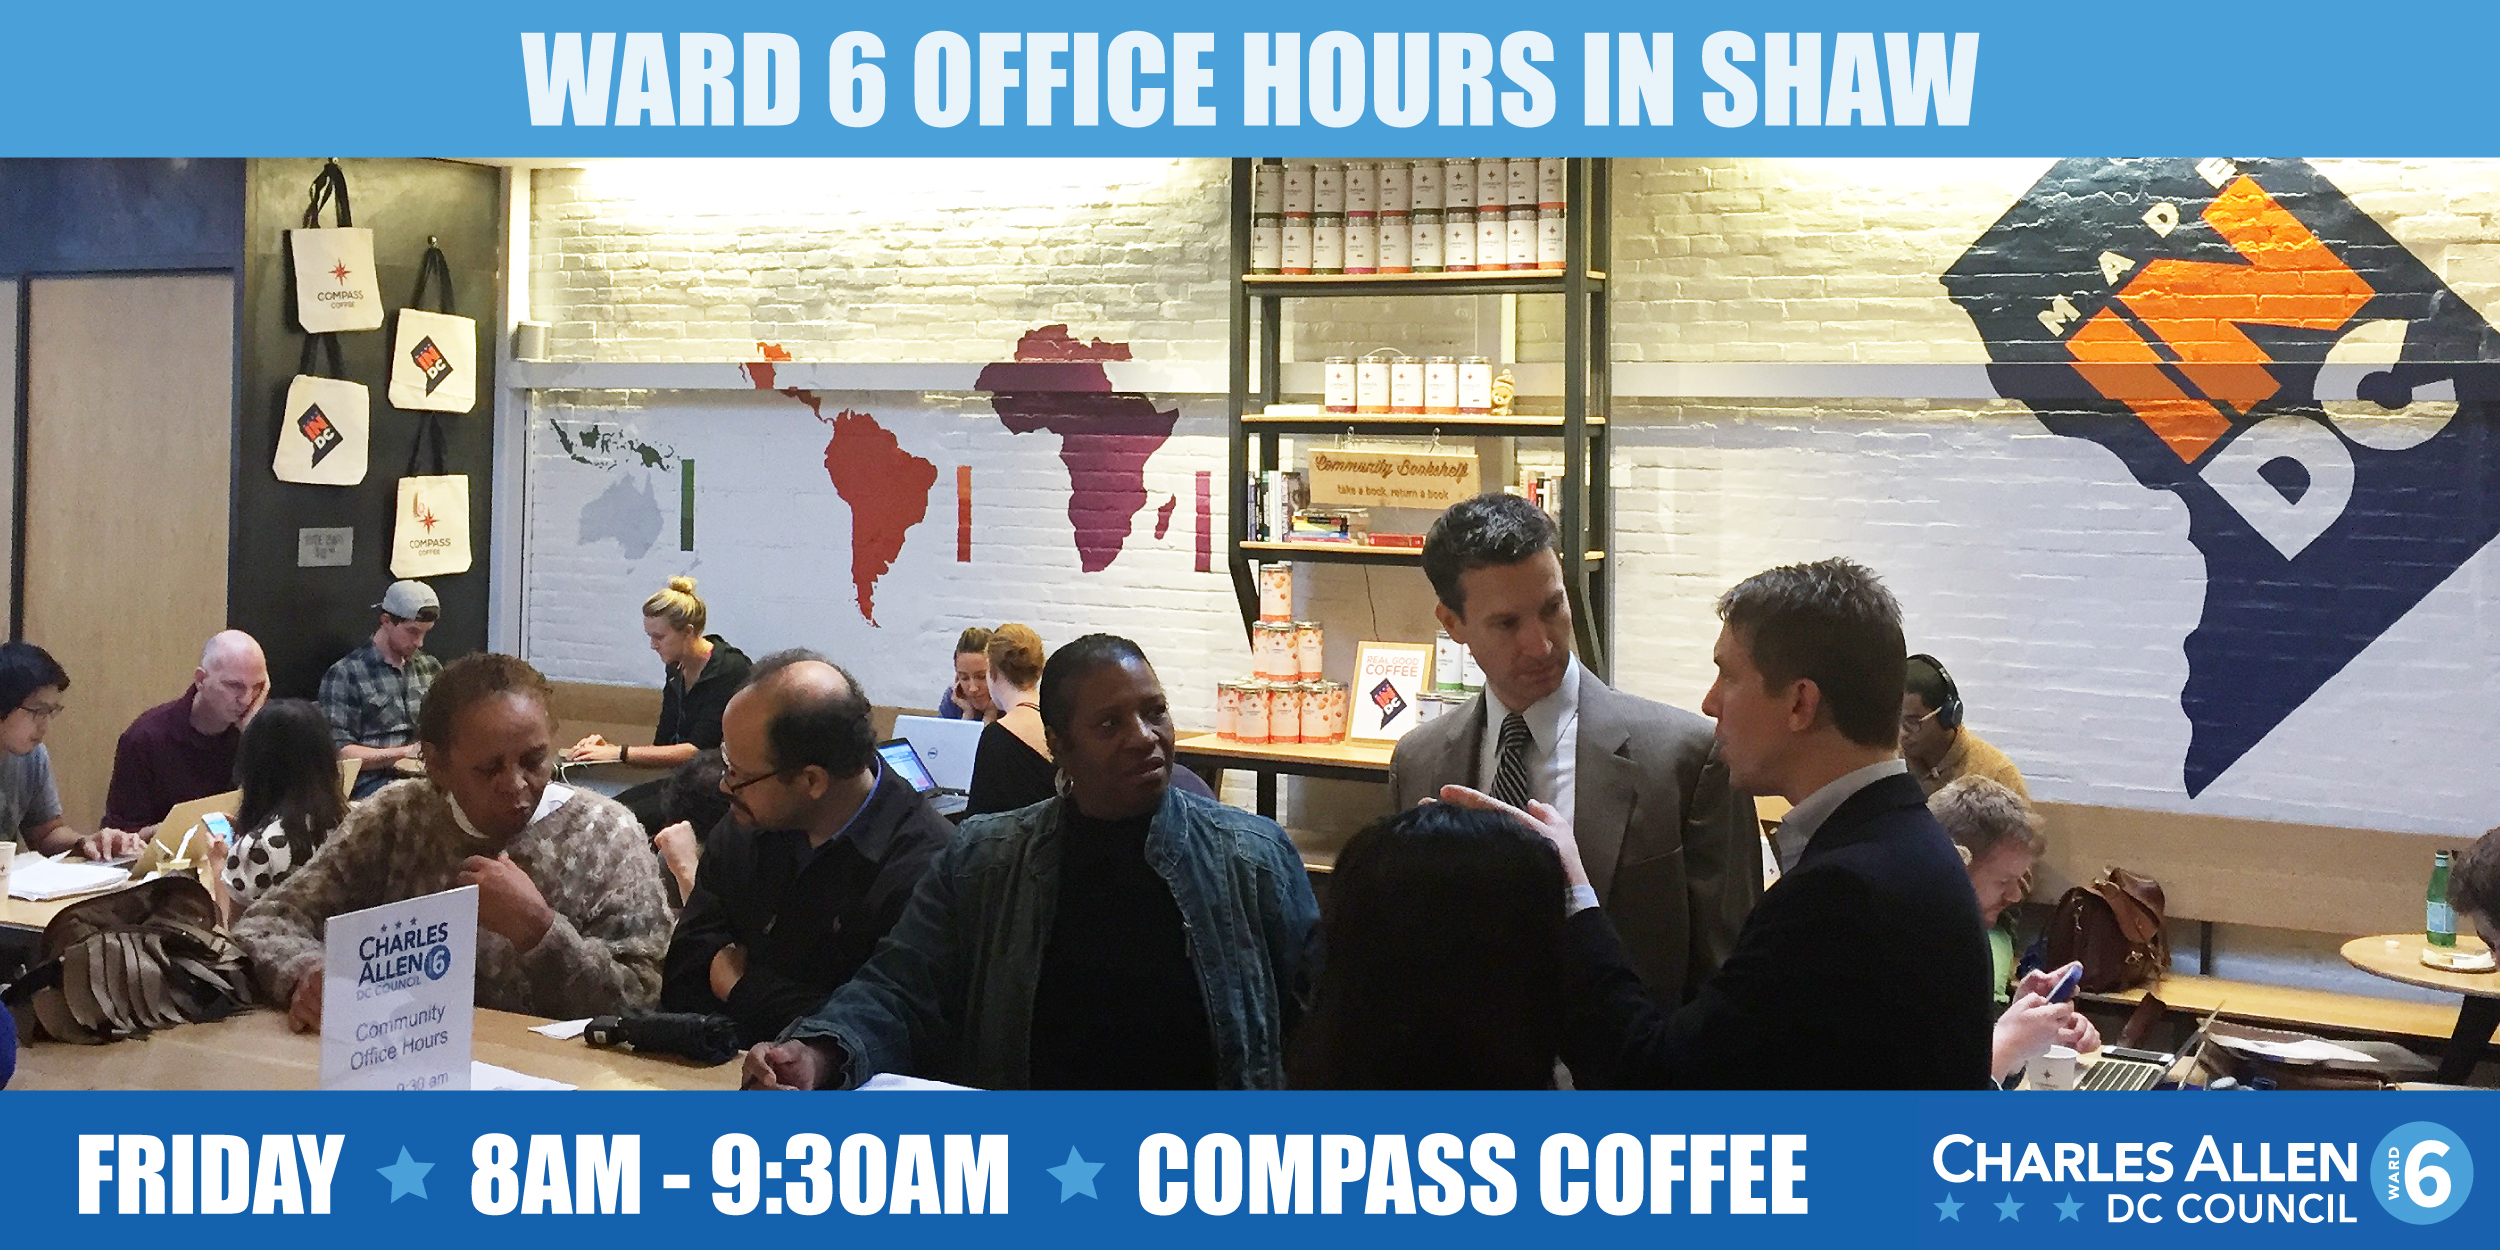 Shaw-Office-Hours.jpg